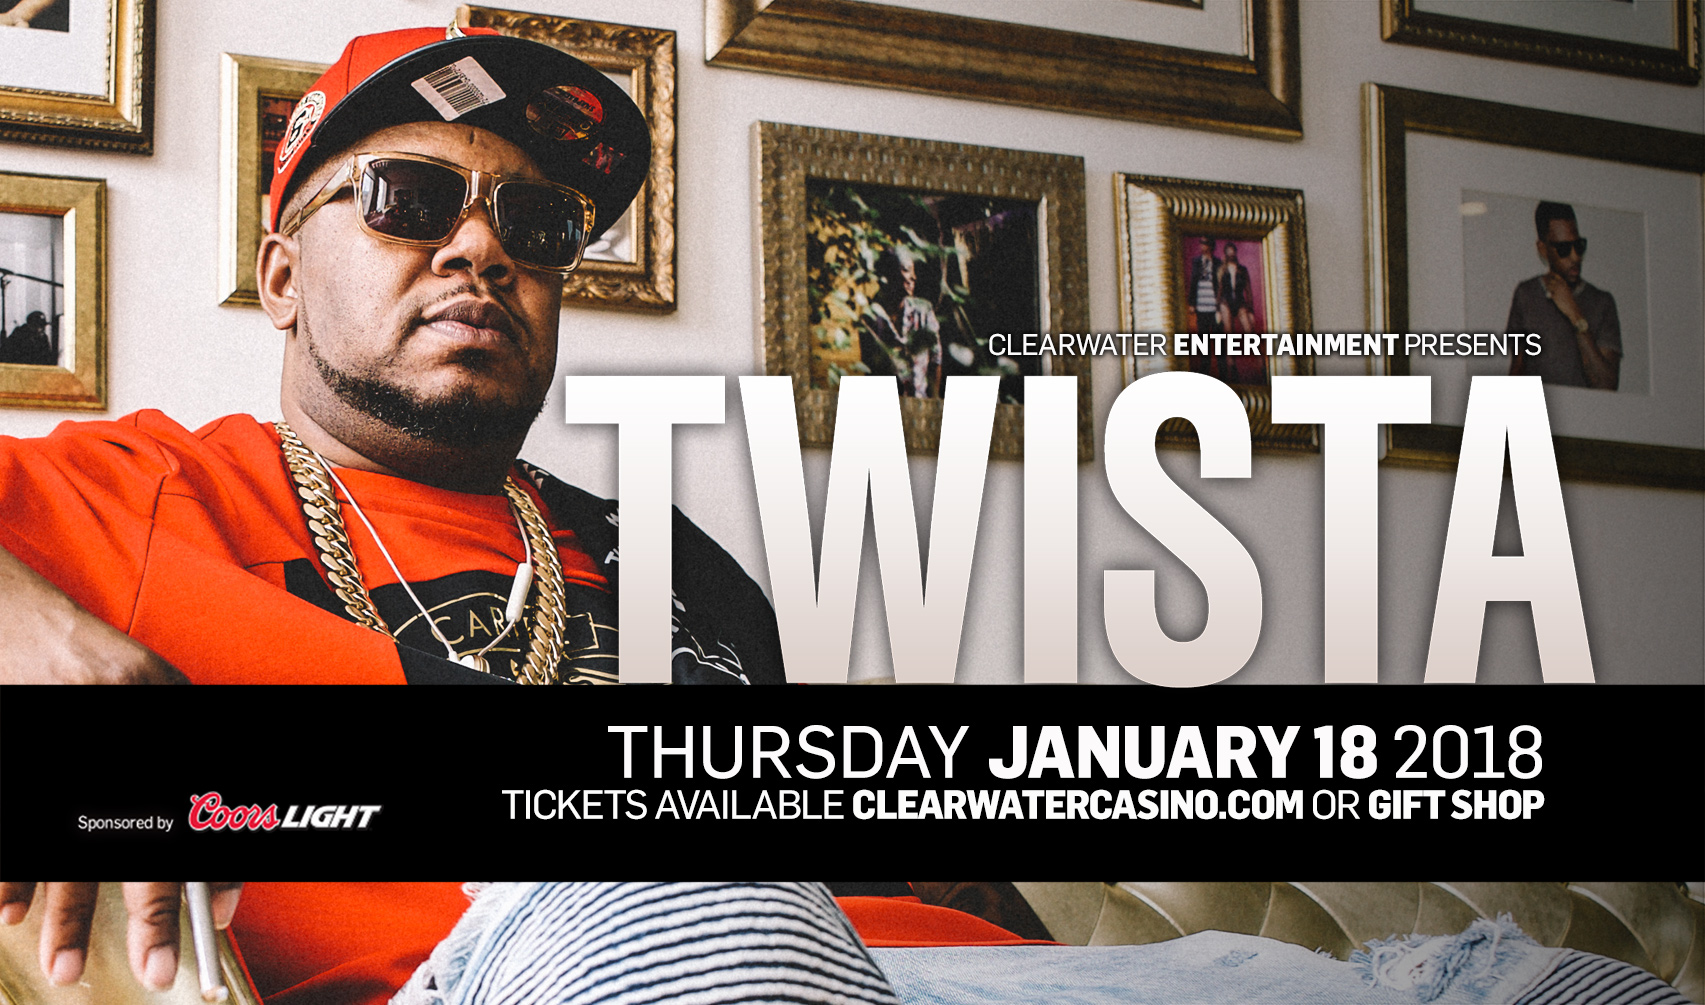 Twista Beach Rock Lounge Clearwater Casino Resort